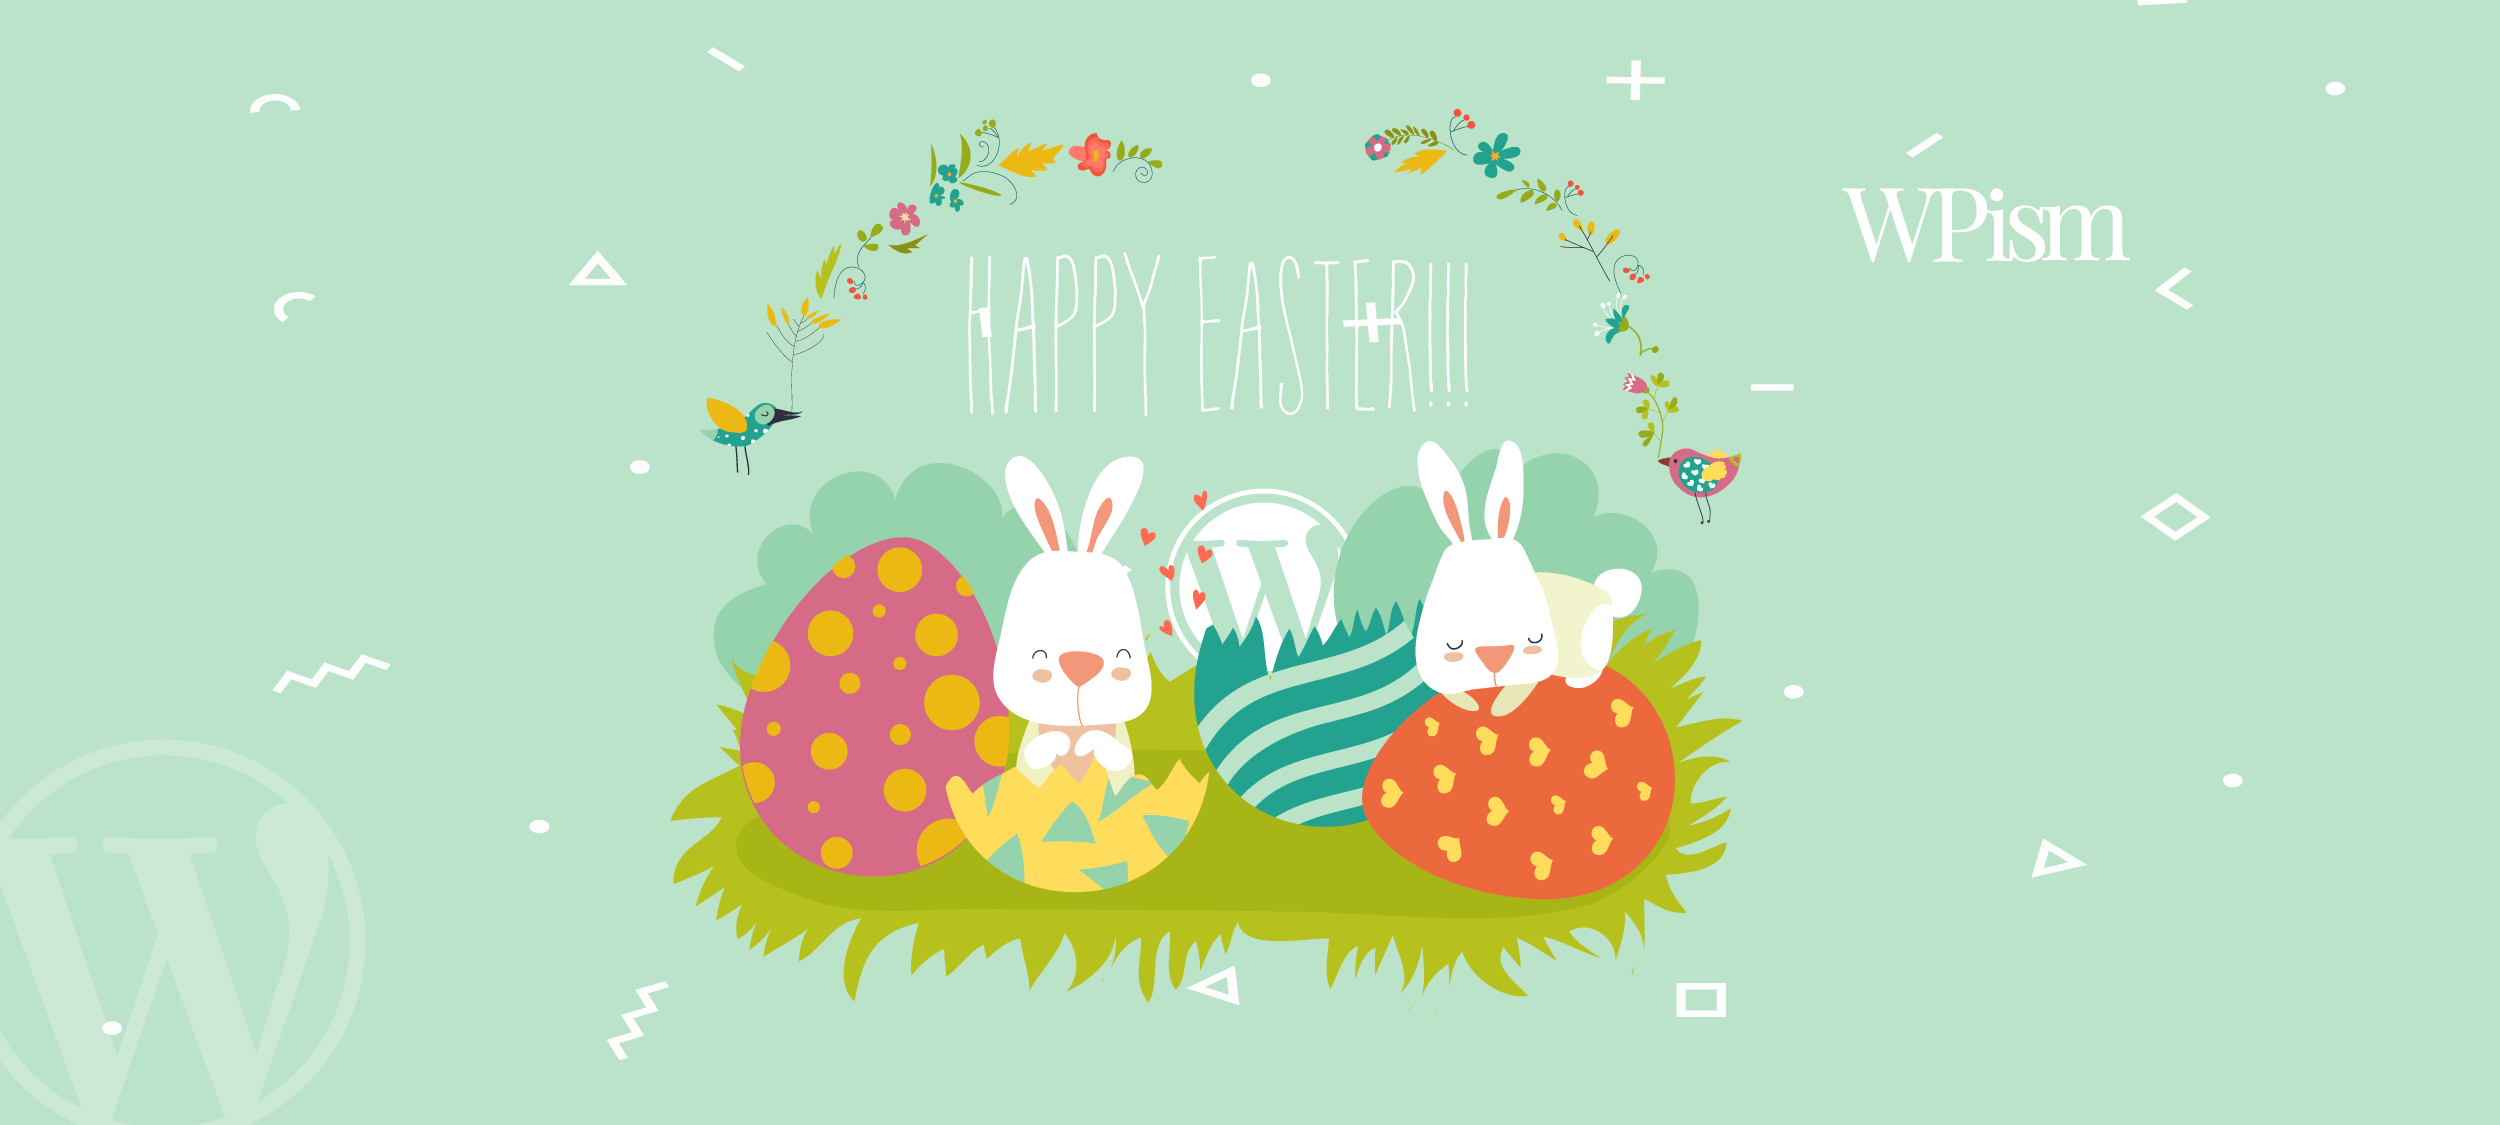 Happy Easter WordPress Deals Discounts